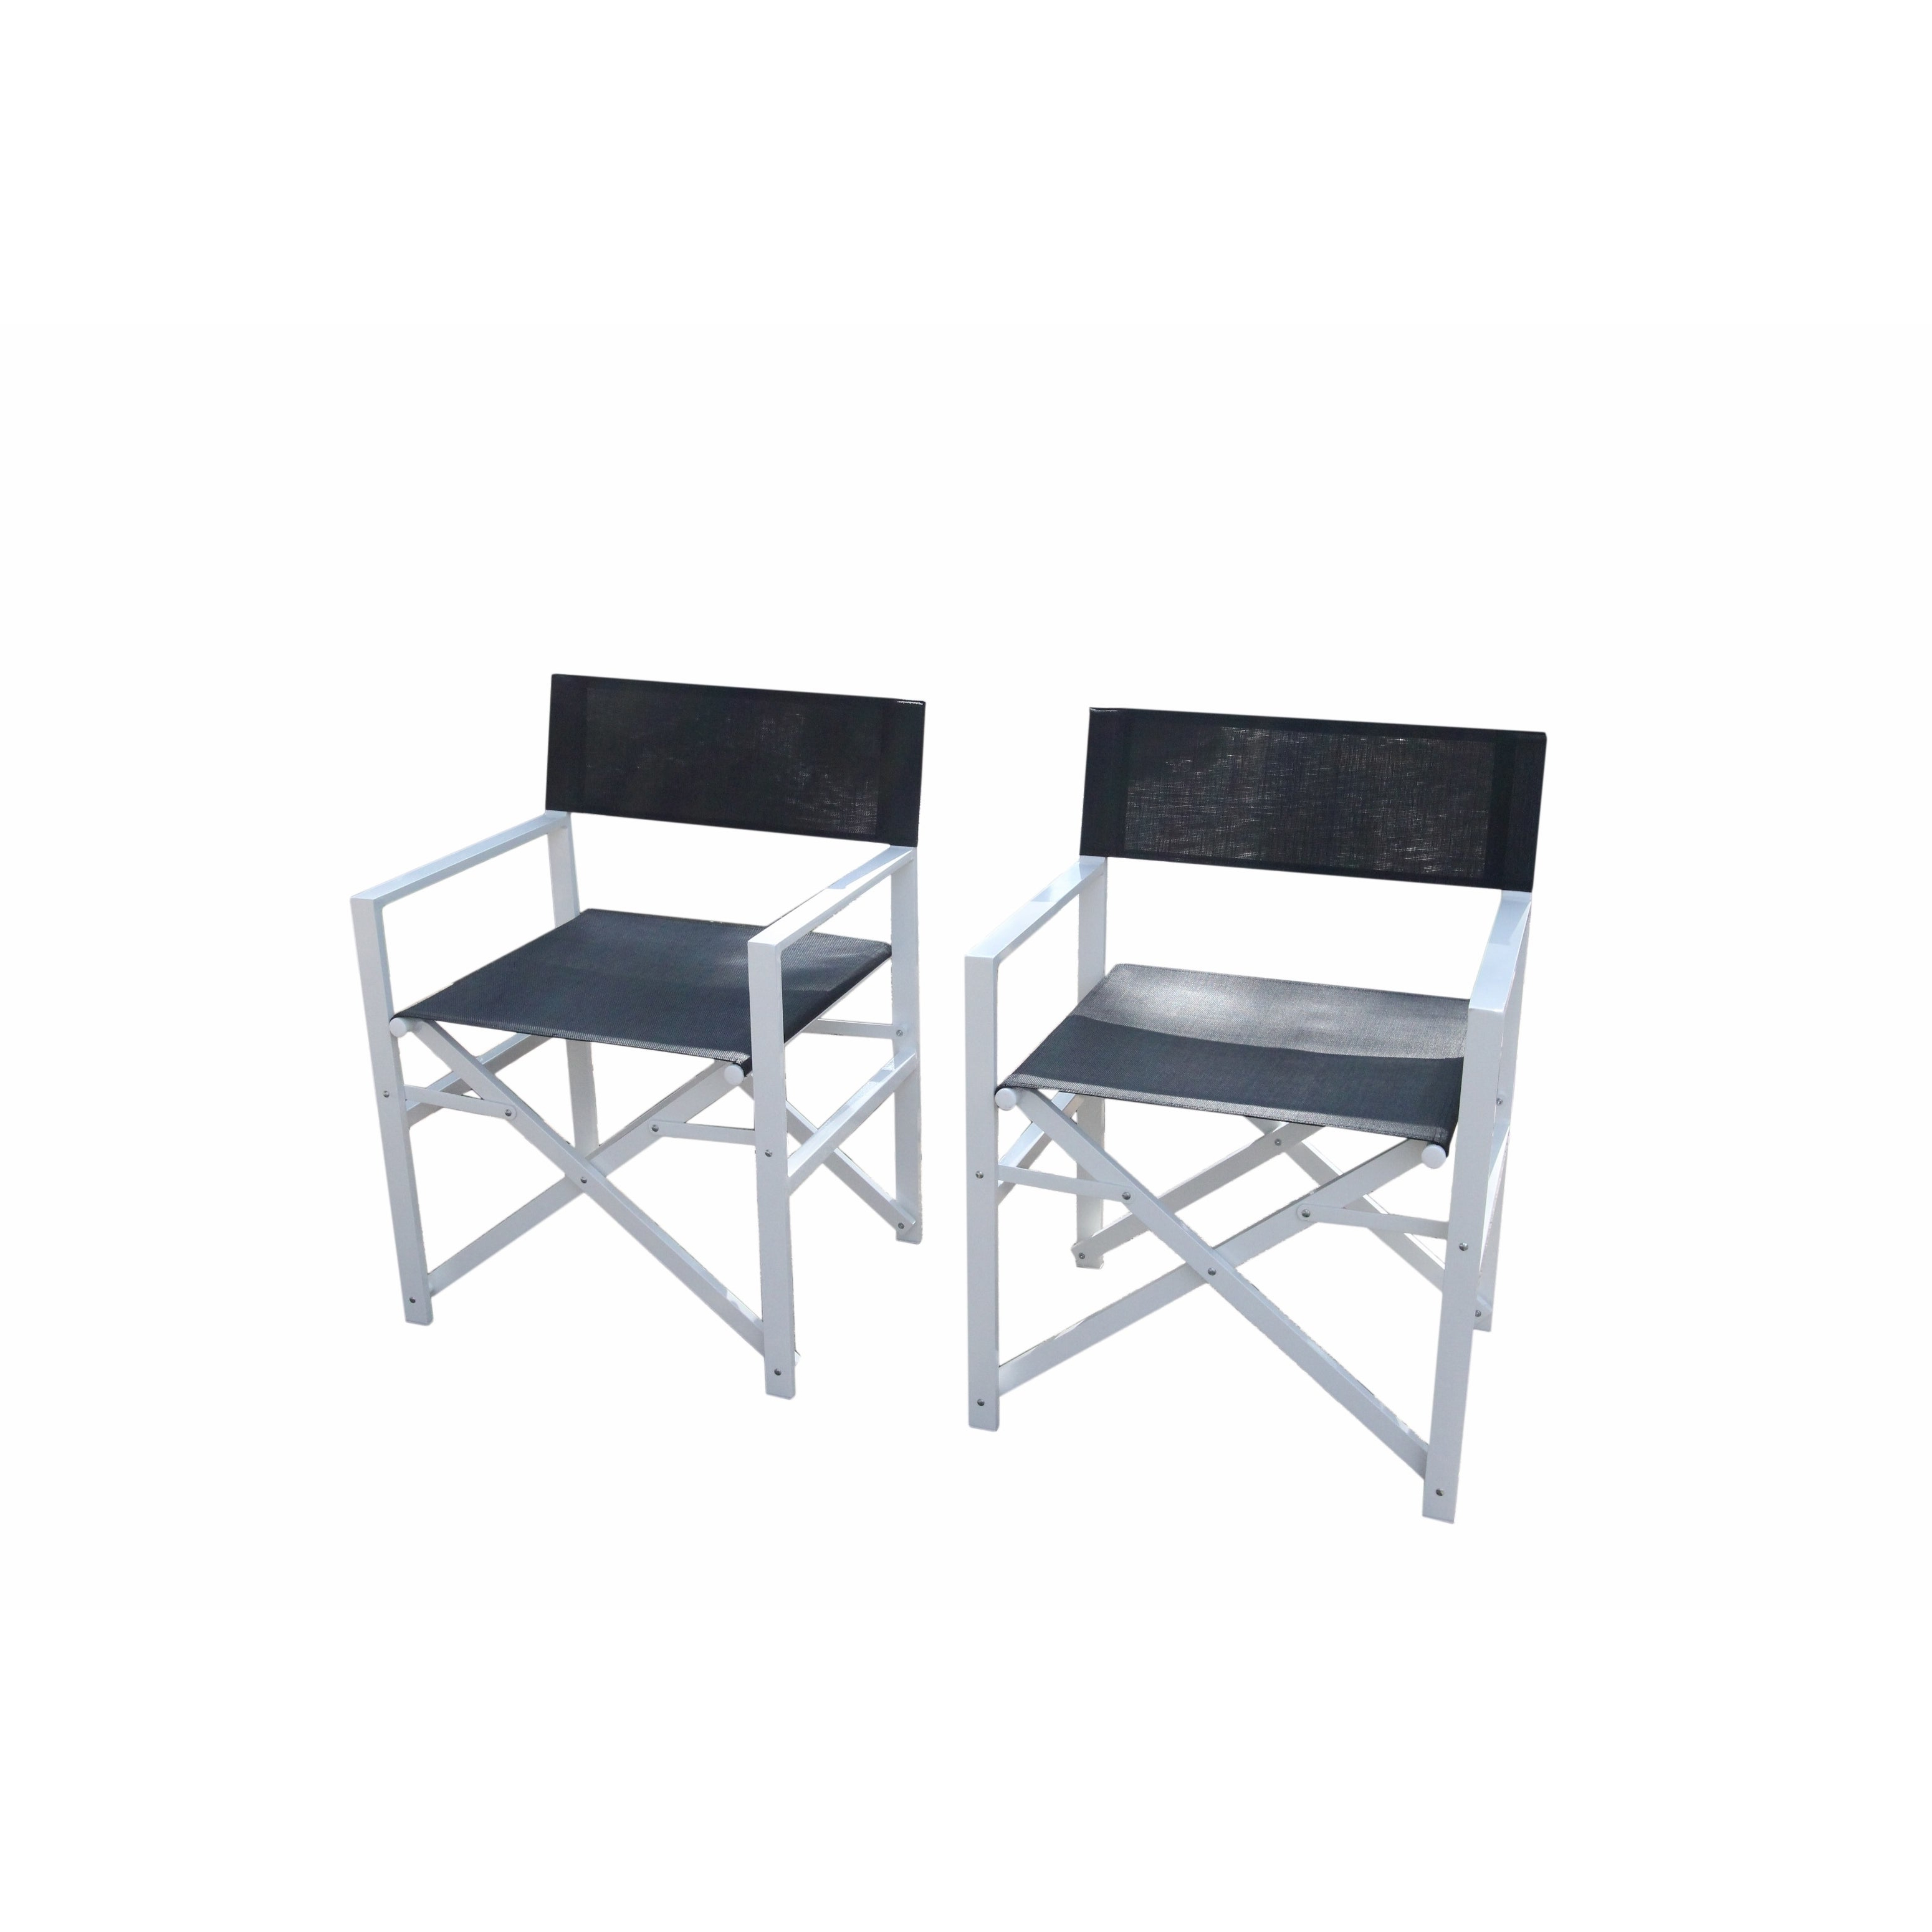 Newest Shop Del Mar White Director Chair 5 Piece Dining Set – Free Shipping For Delmar 5 Piece Dining Sets (View 20 of 25)